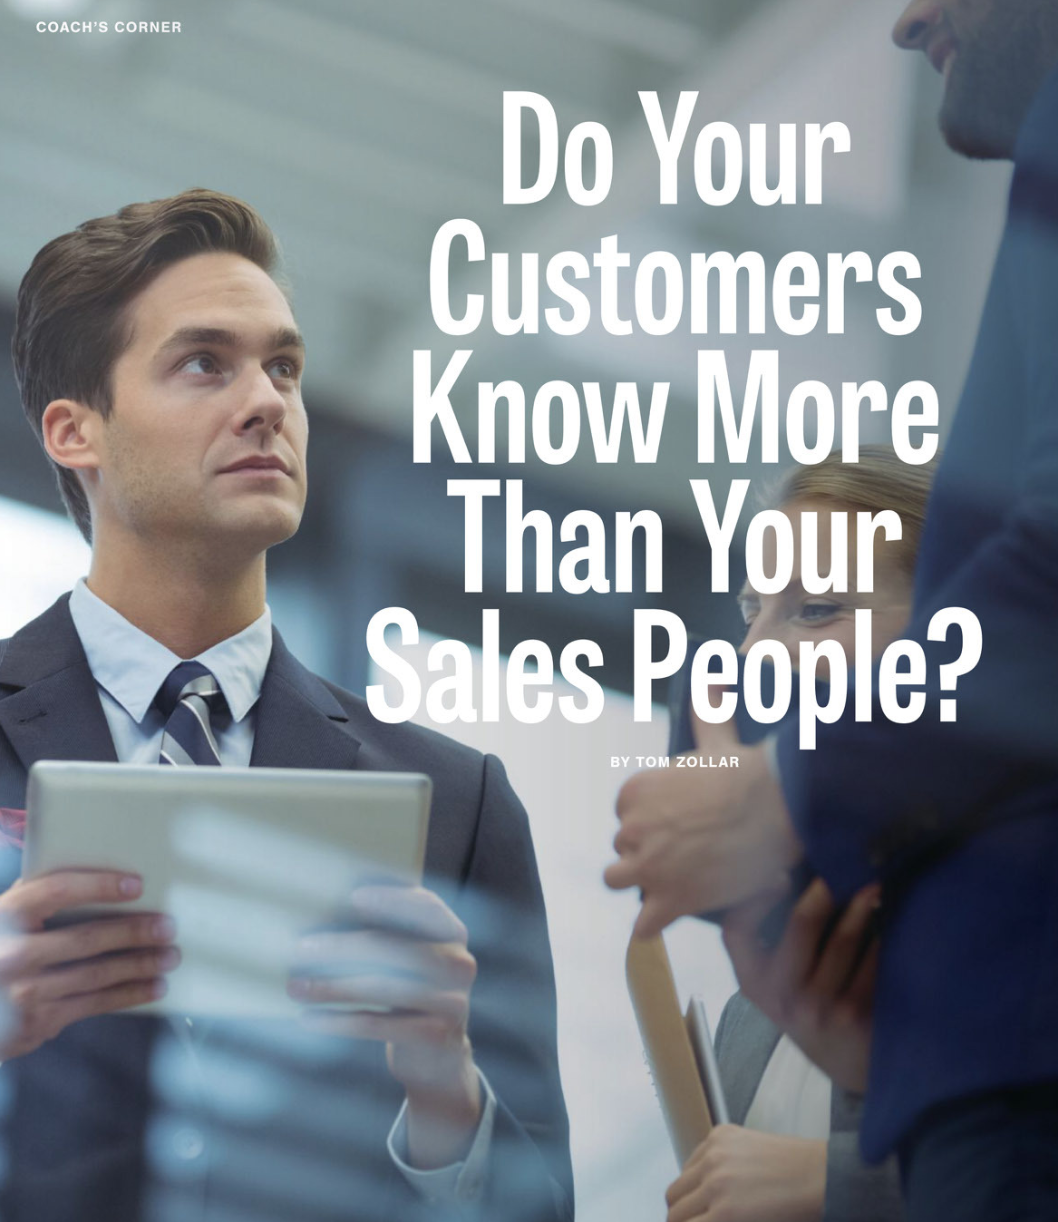 Coach's Corner: Do Your Customers Know More Than Your Sales People?